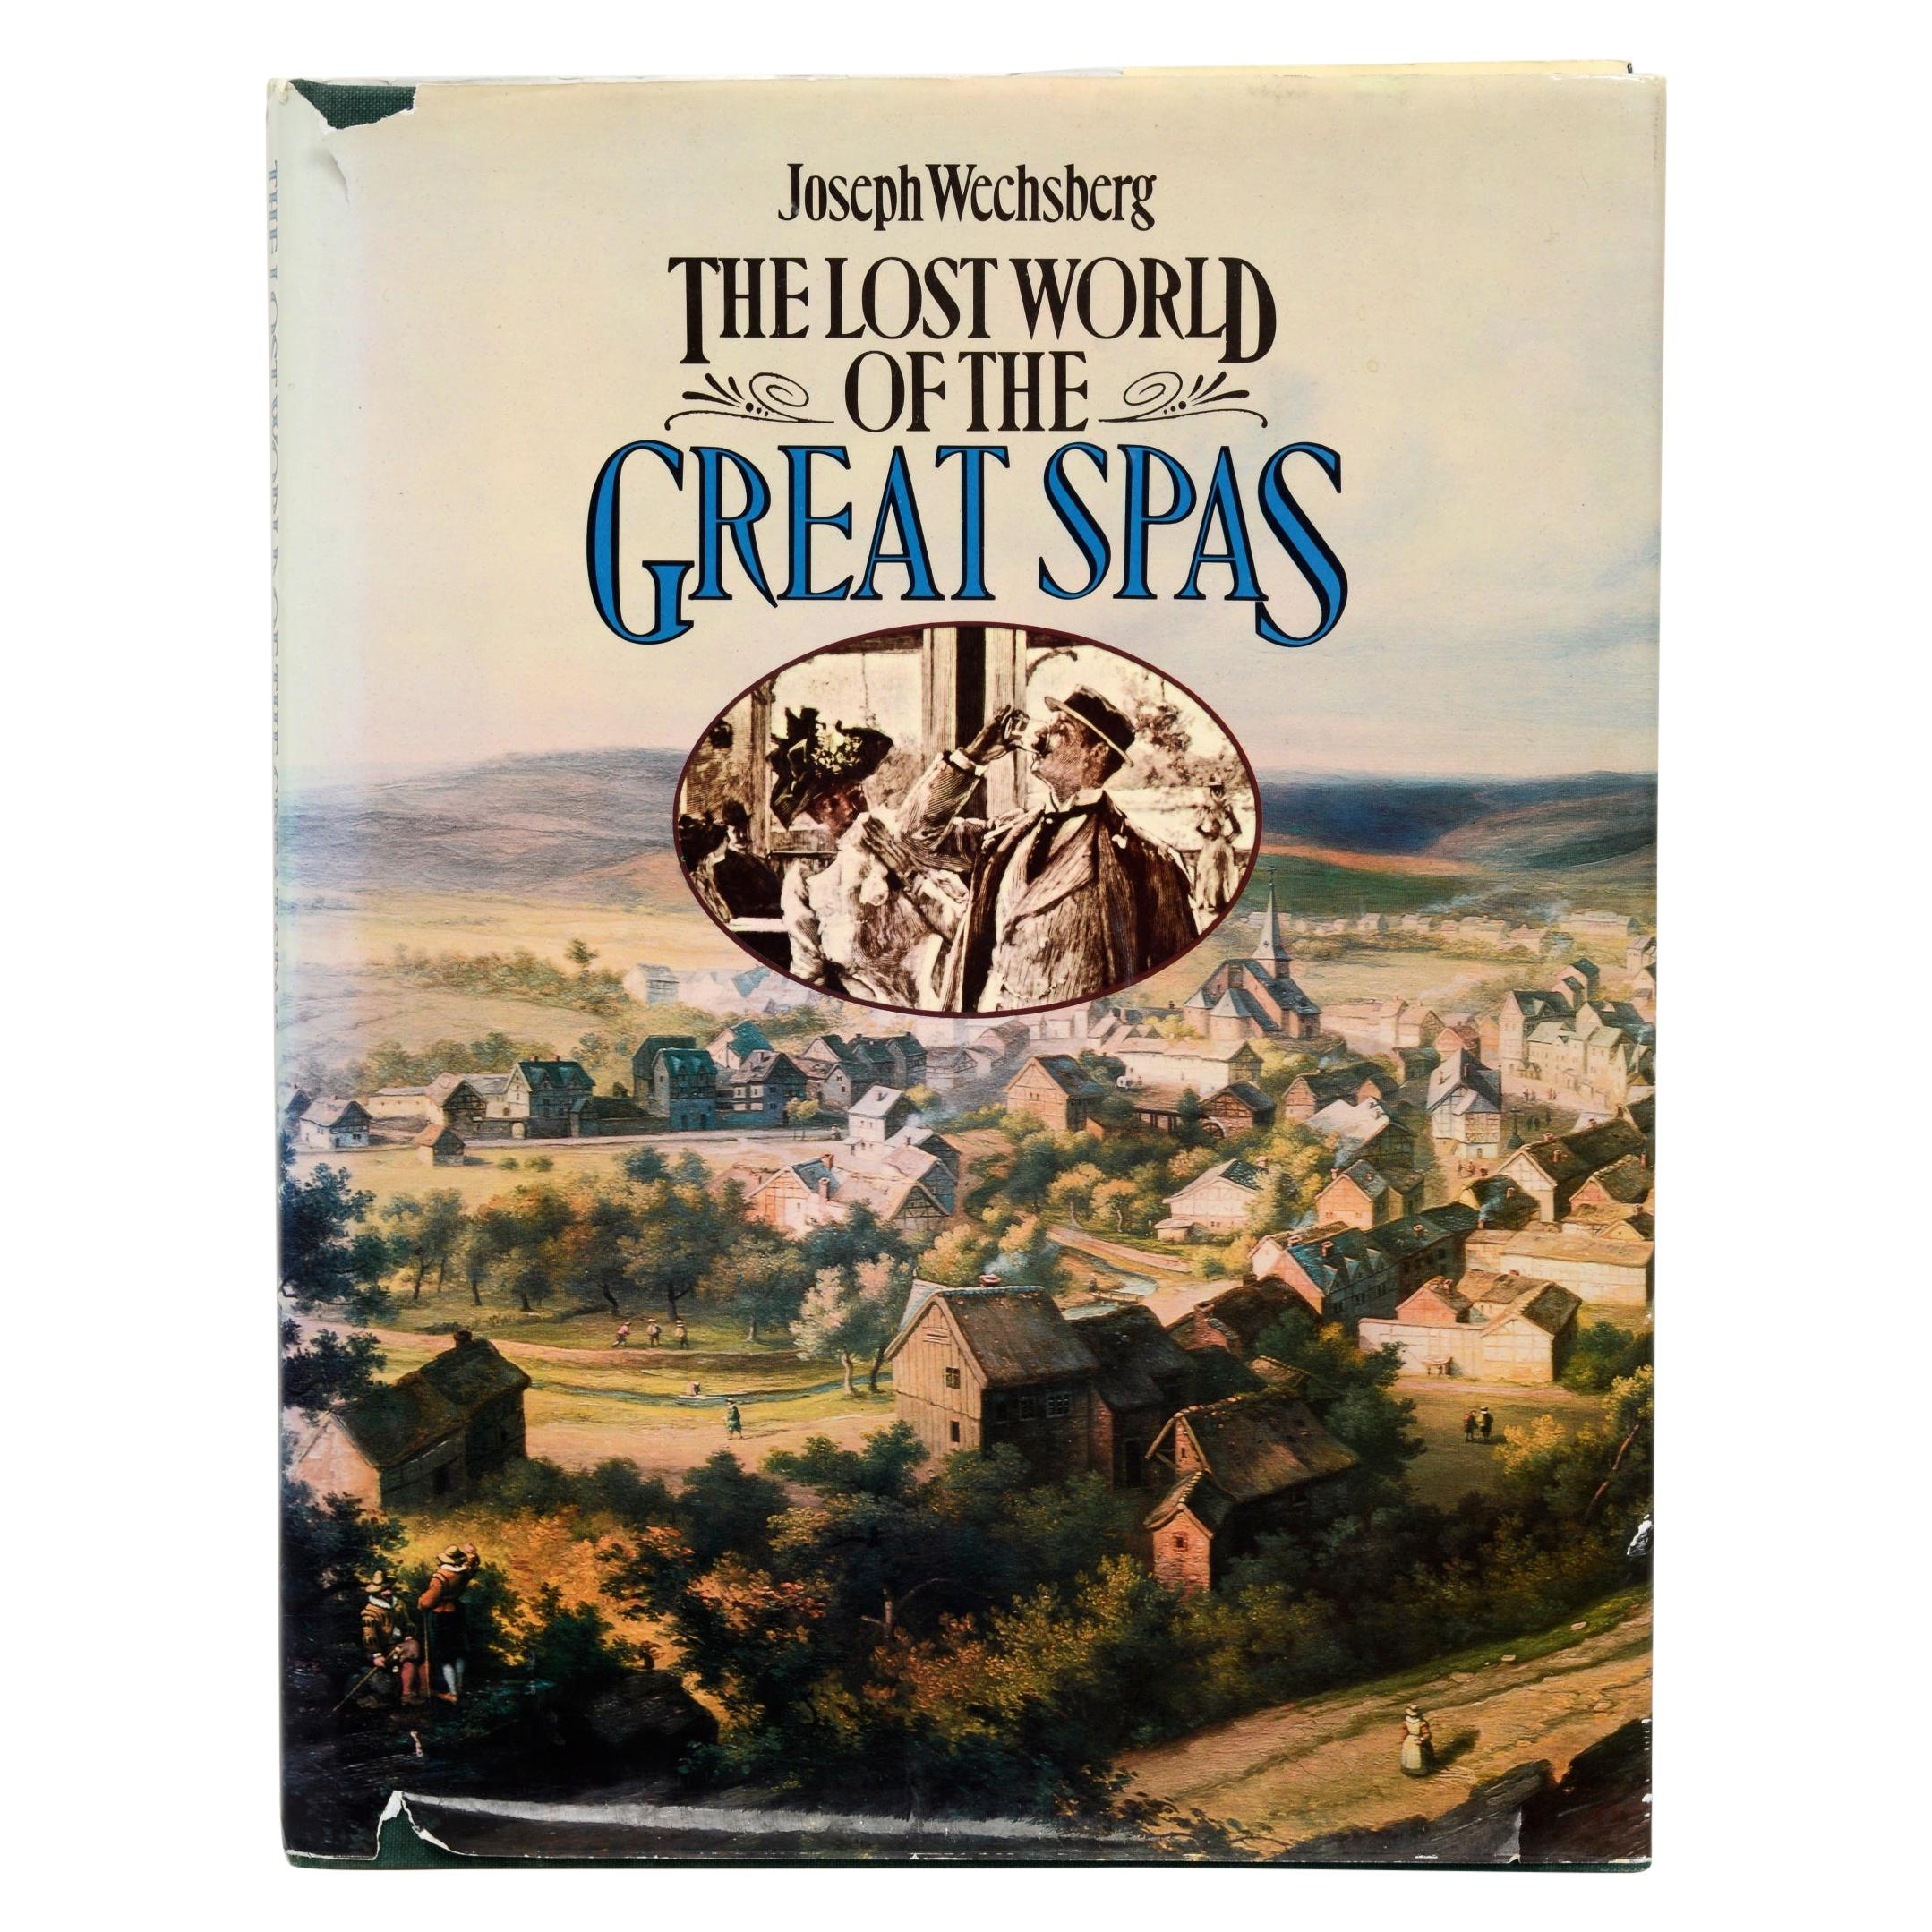 The Lost World of the Great Spas by Joseph Wechsberg, First Edition